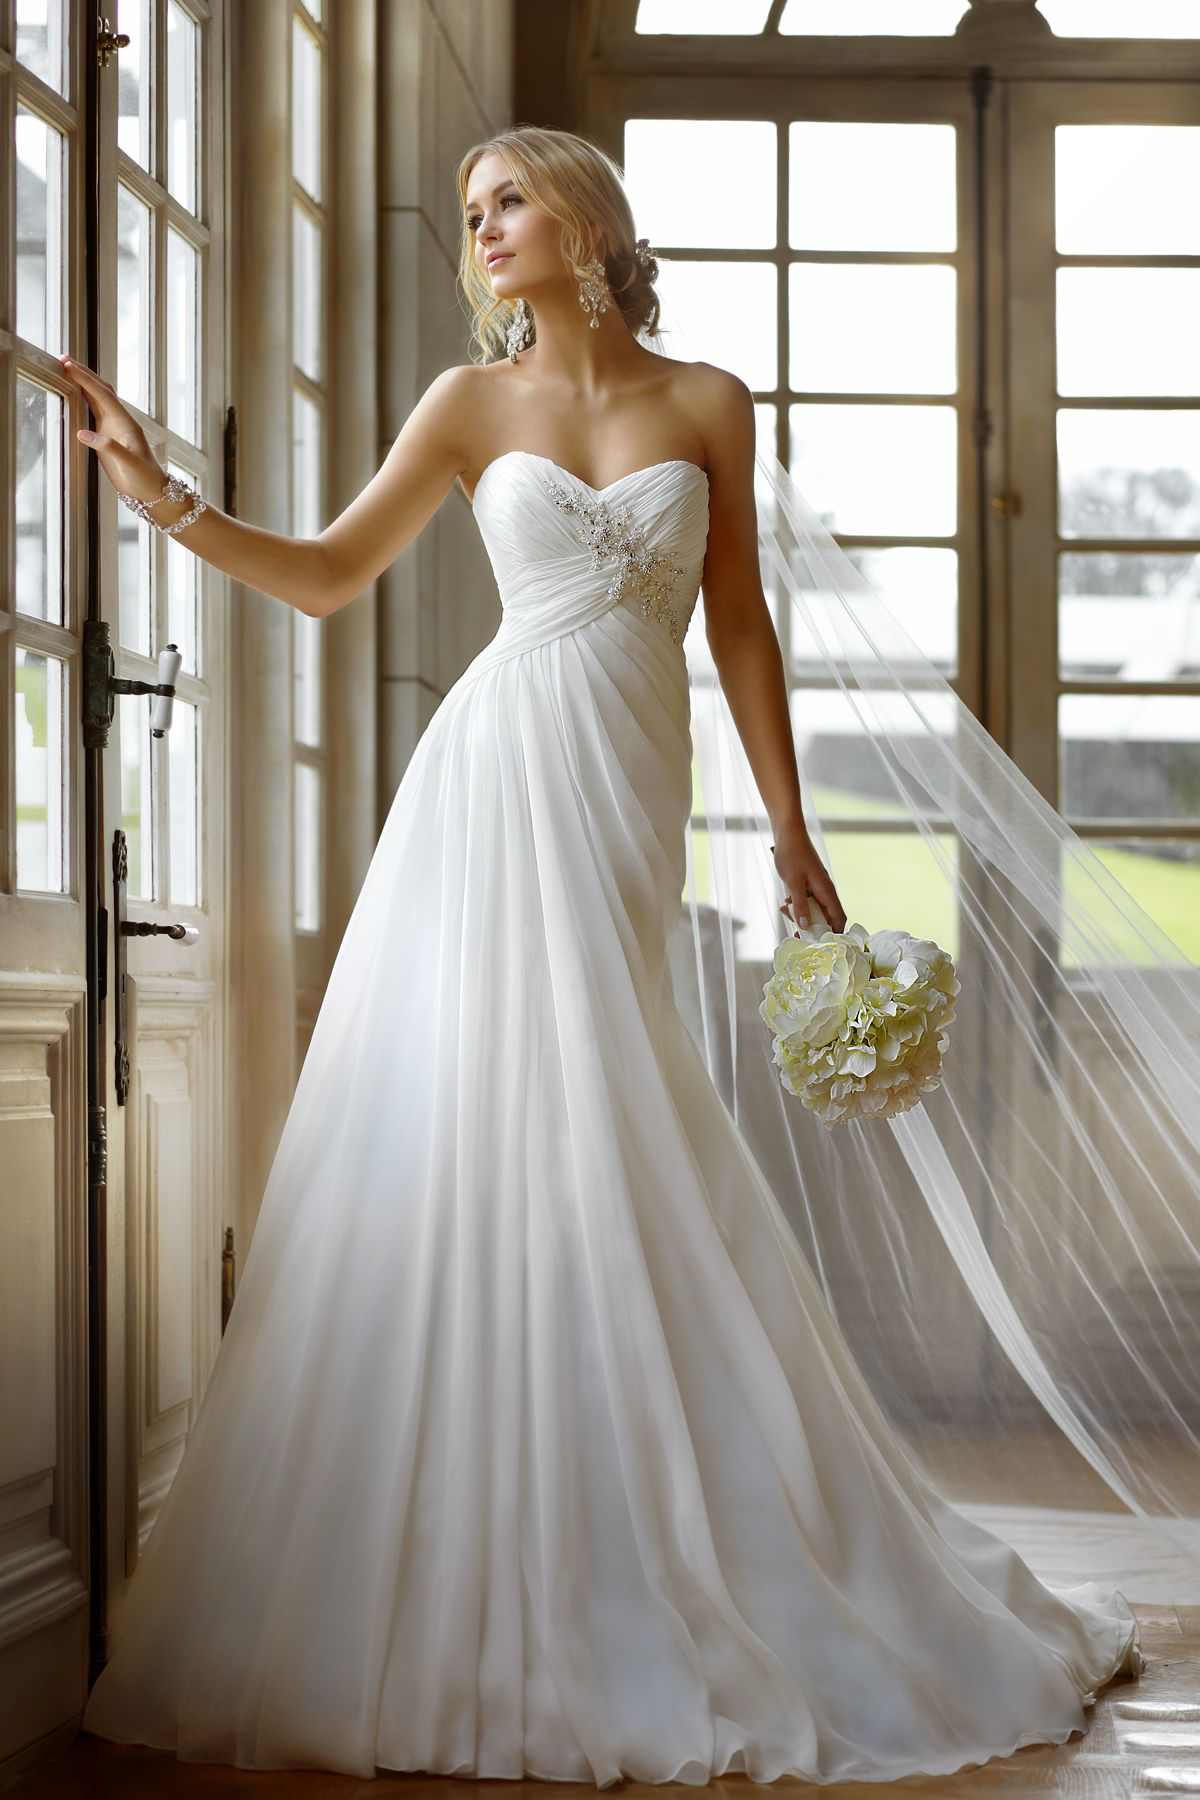 Designer beach wedding dresses  wedding dresses with straps or sleeves  Casual Beach Wedding